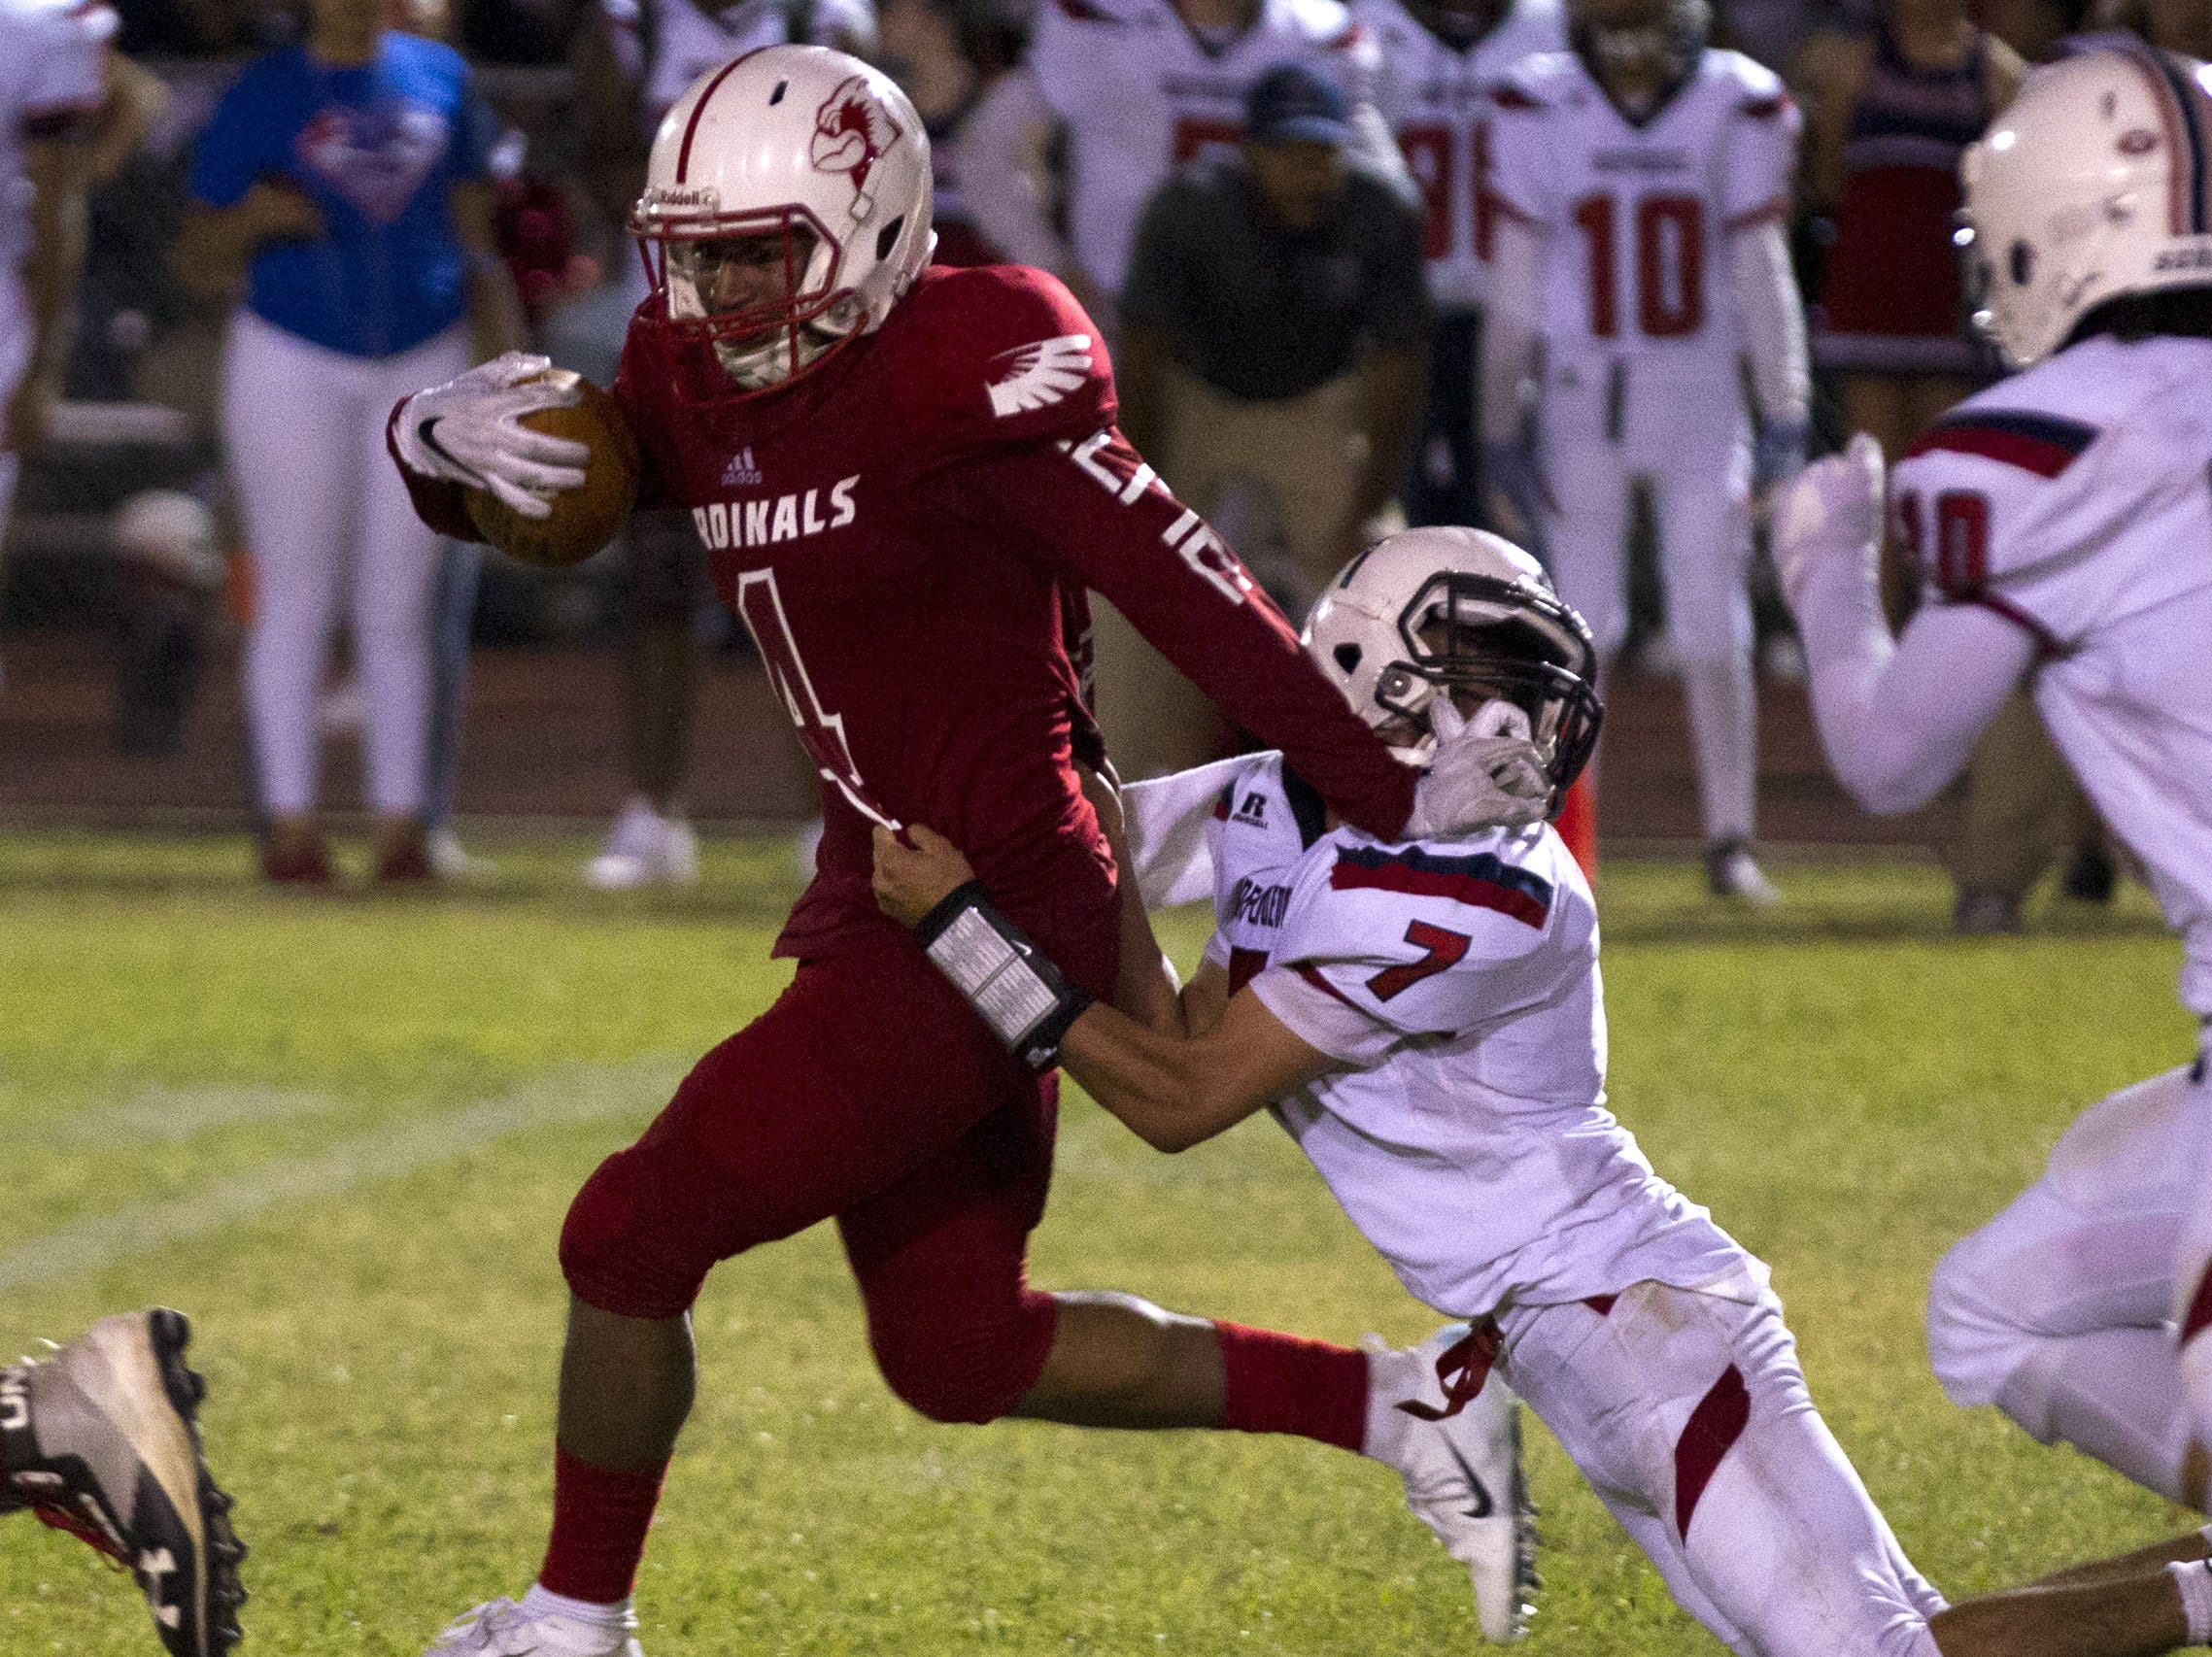 Glendale's Andre Neal pushes away from Independence's  Samuel Espindola during their game in Glendale Friday, Aug. 31, 2018. #azhsfb